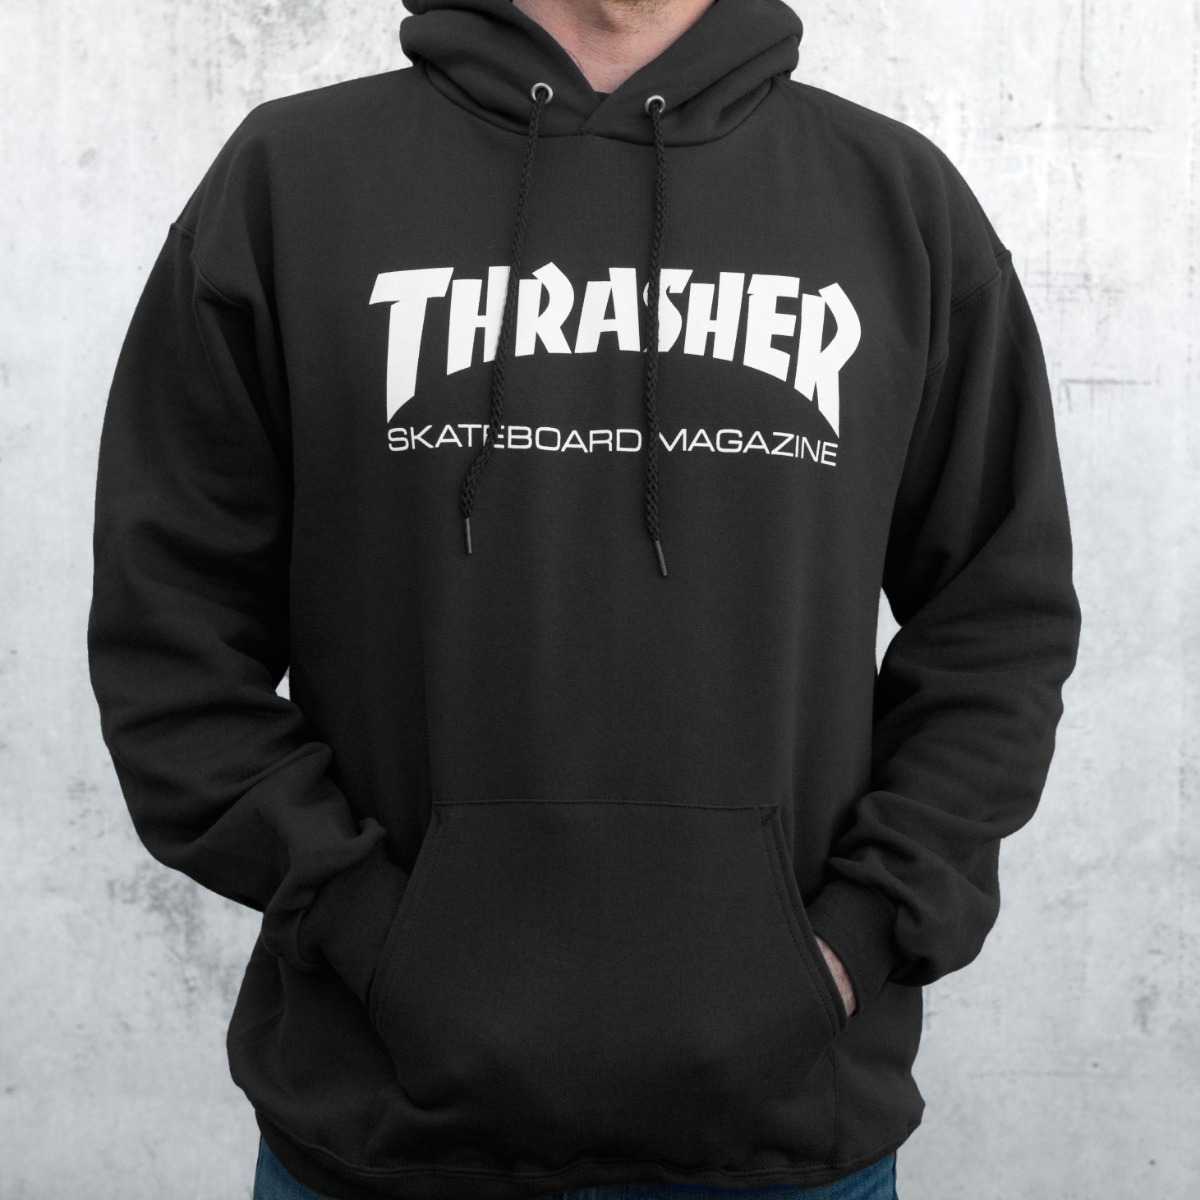 6b493f77cd10 buzo hoodie thrasher black flama - white - original. Cargando zoom.